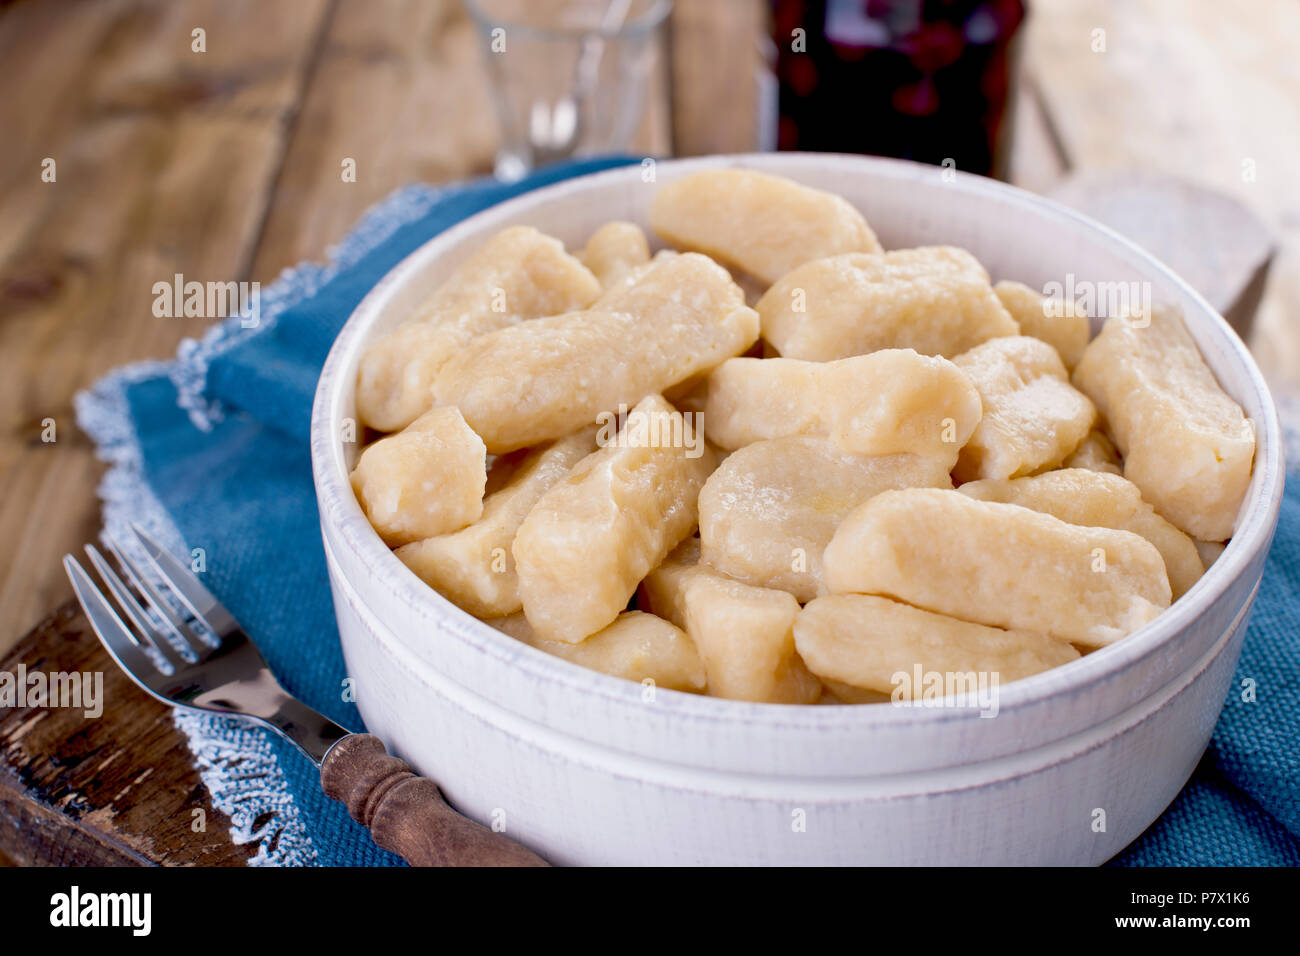 Homemade dumplings with cheese and vanilla. In a rustic style, in a ceramic cup. Healthy vegetarian food. Home cooking. Russian kitchen. Stock Photo